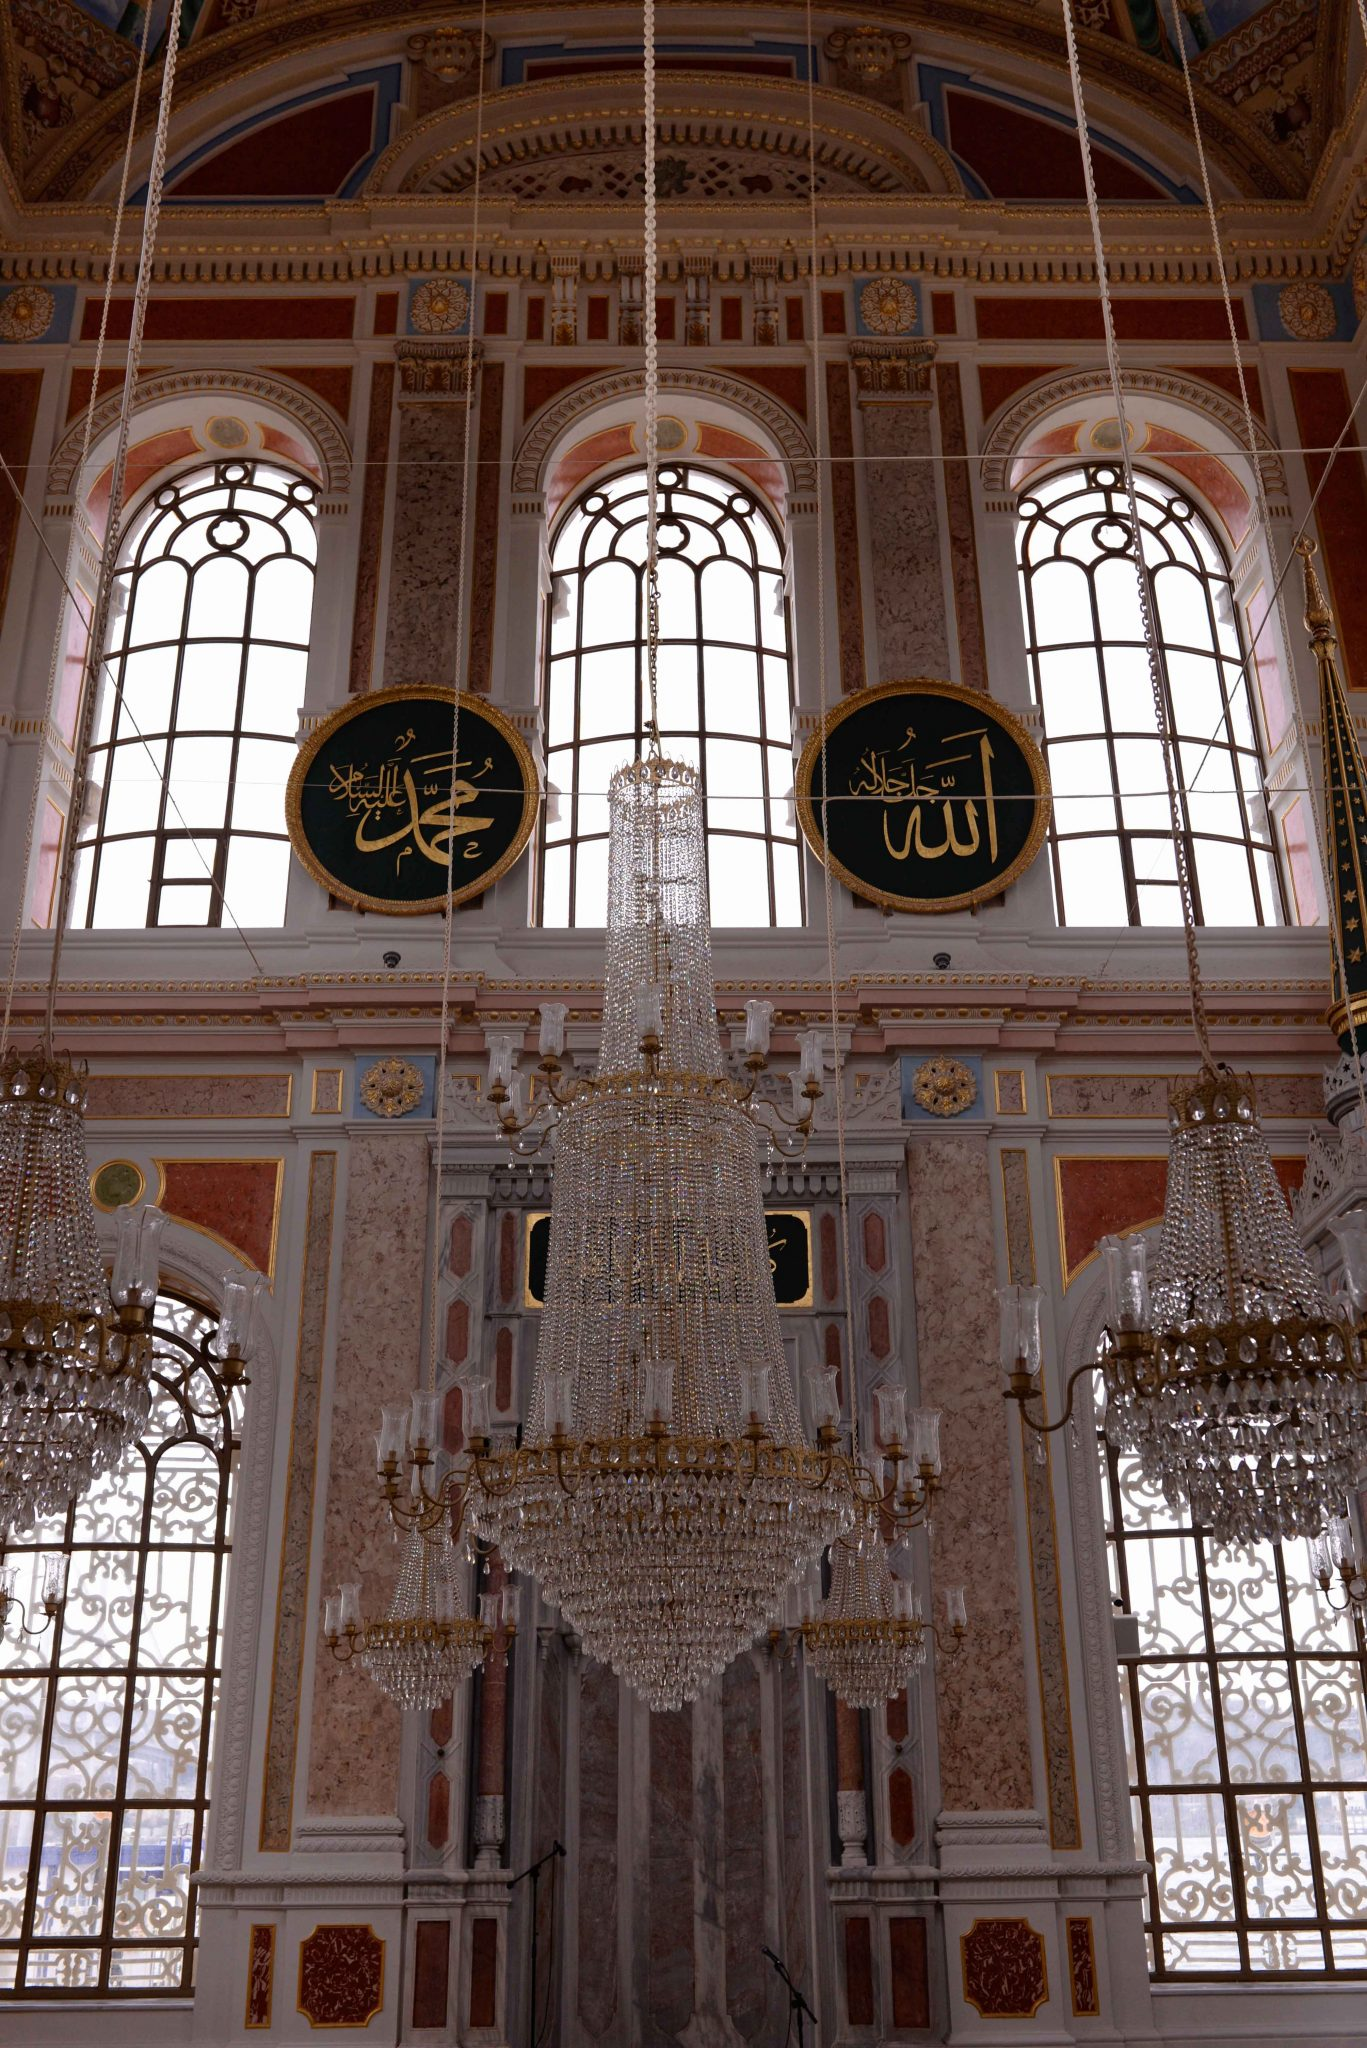 Another beautiful mosque